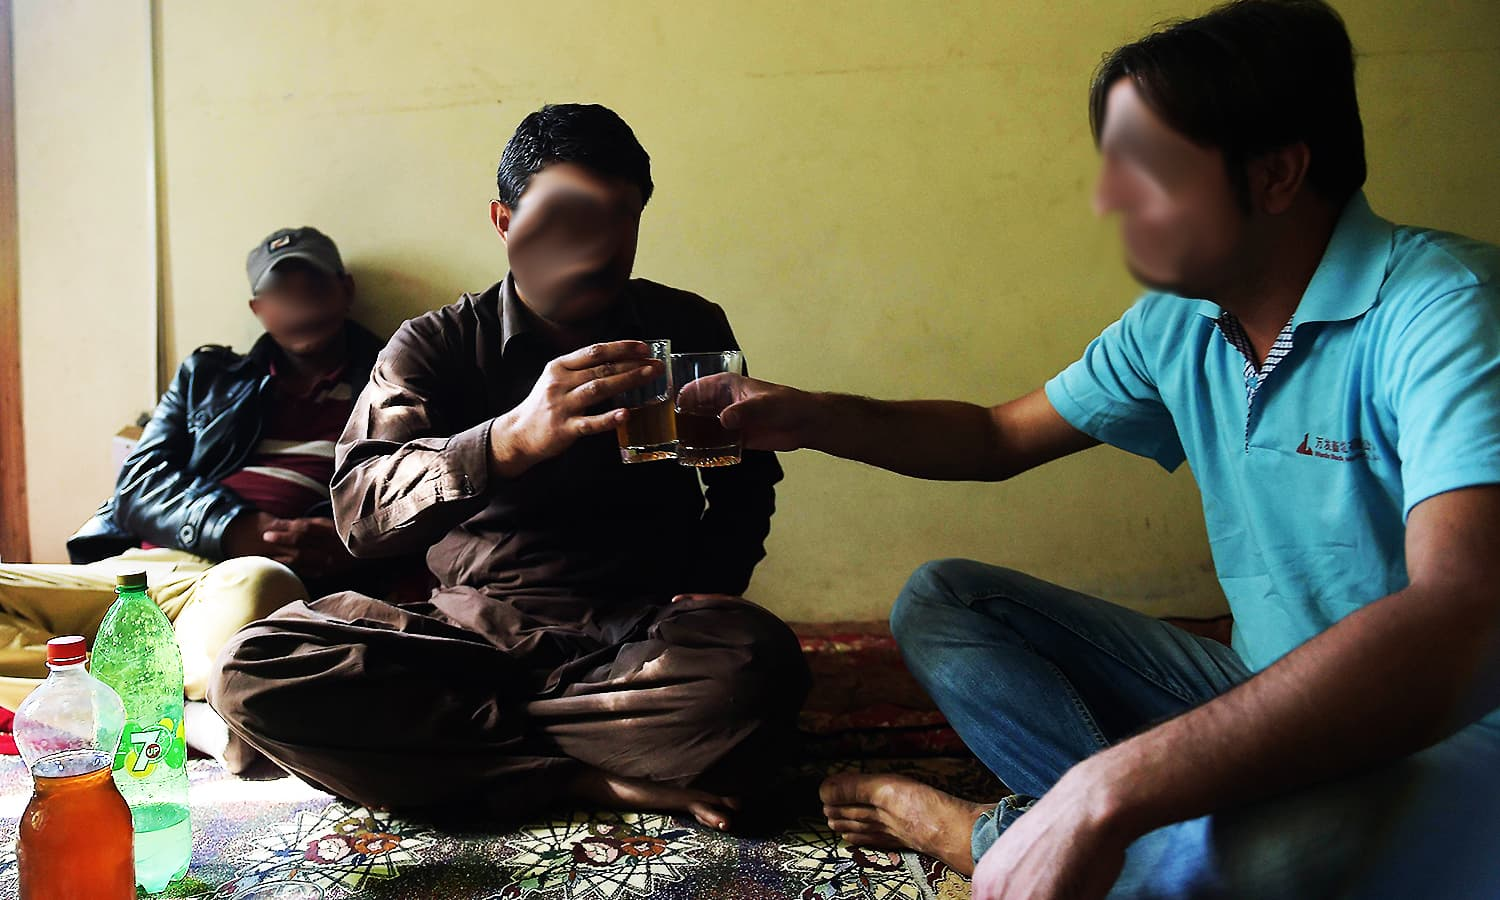 Ahsan and his cousin toast each other as they prepare to drink home brewed wine. ─ AFP